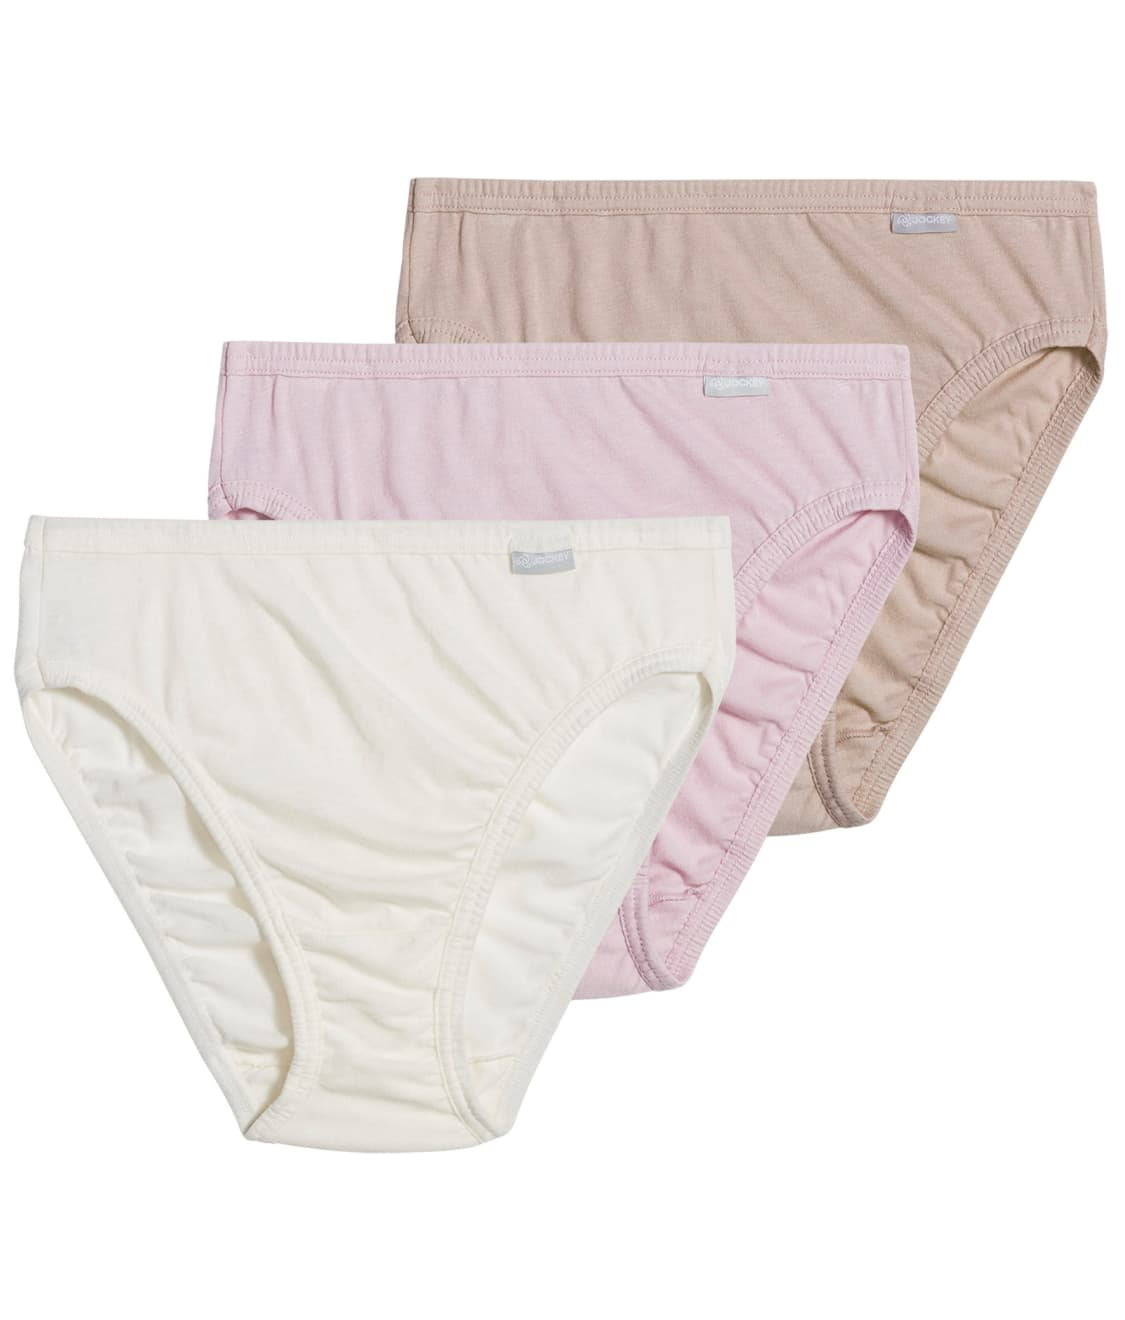 ff41a399c62 See Plus Size Elance® French Cut Brief 3-Pack in Pink   Ivory